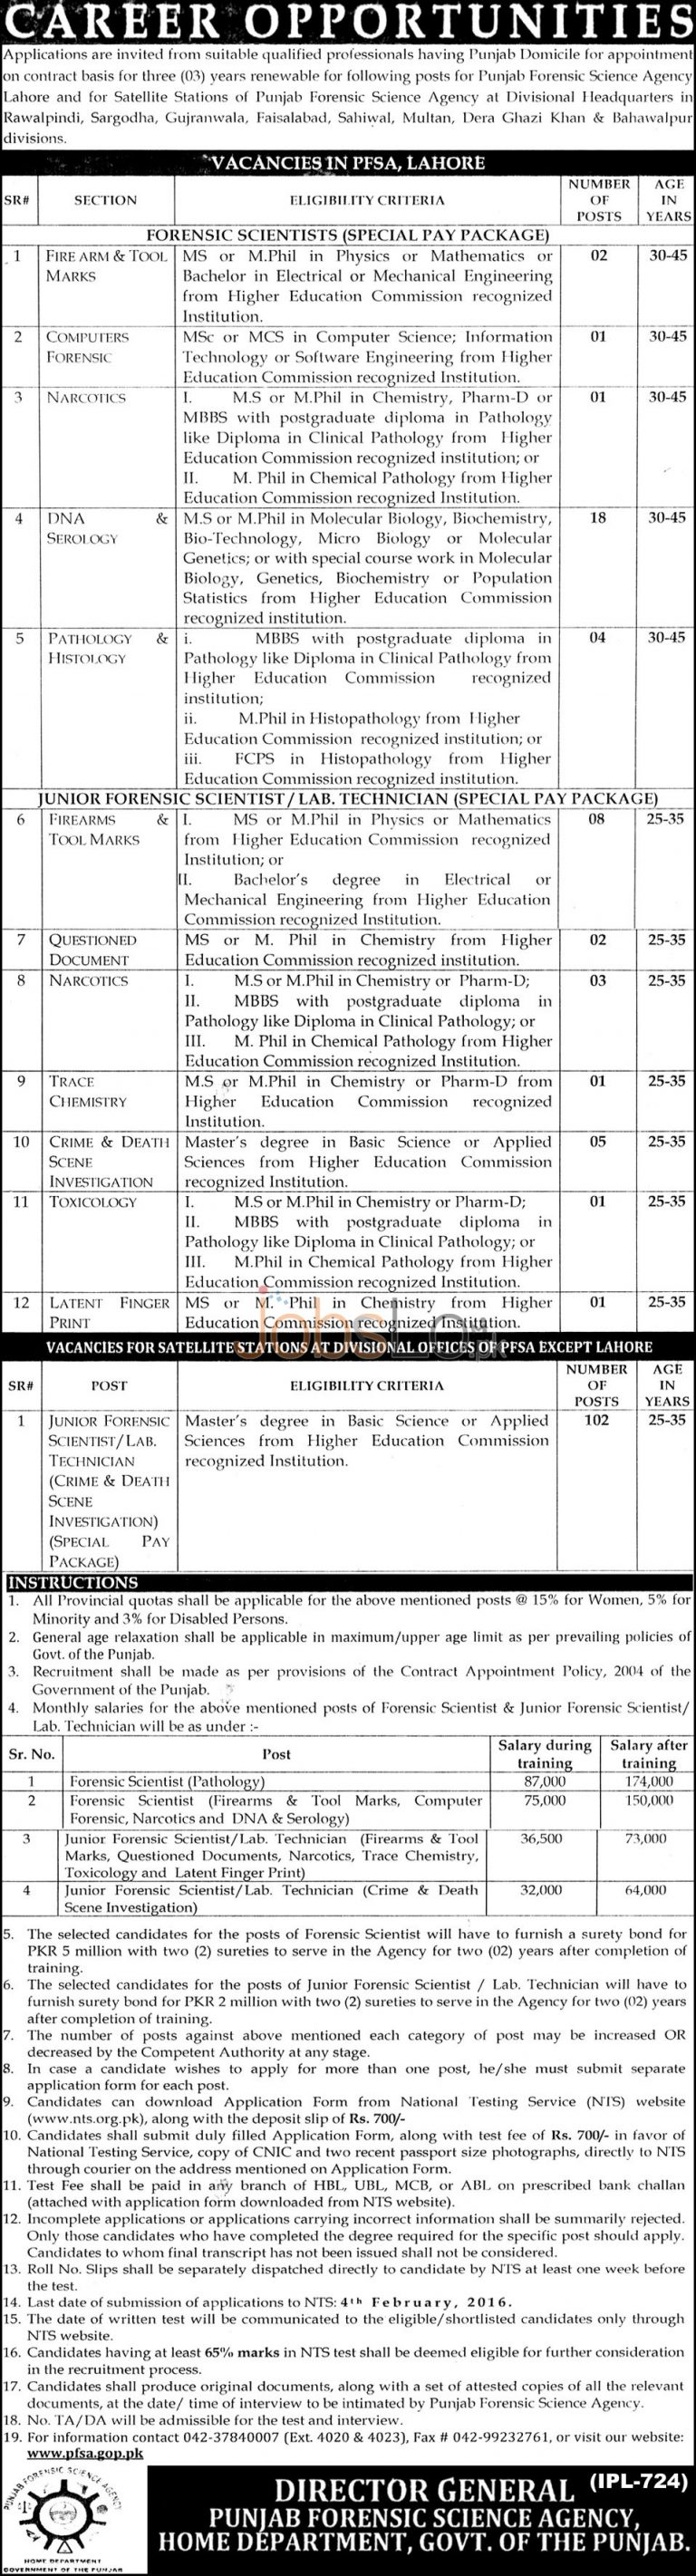 Punjab Forensic Science Agency Jobs 2016 for Forensic Scientist